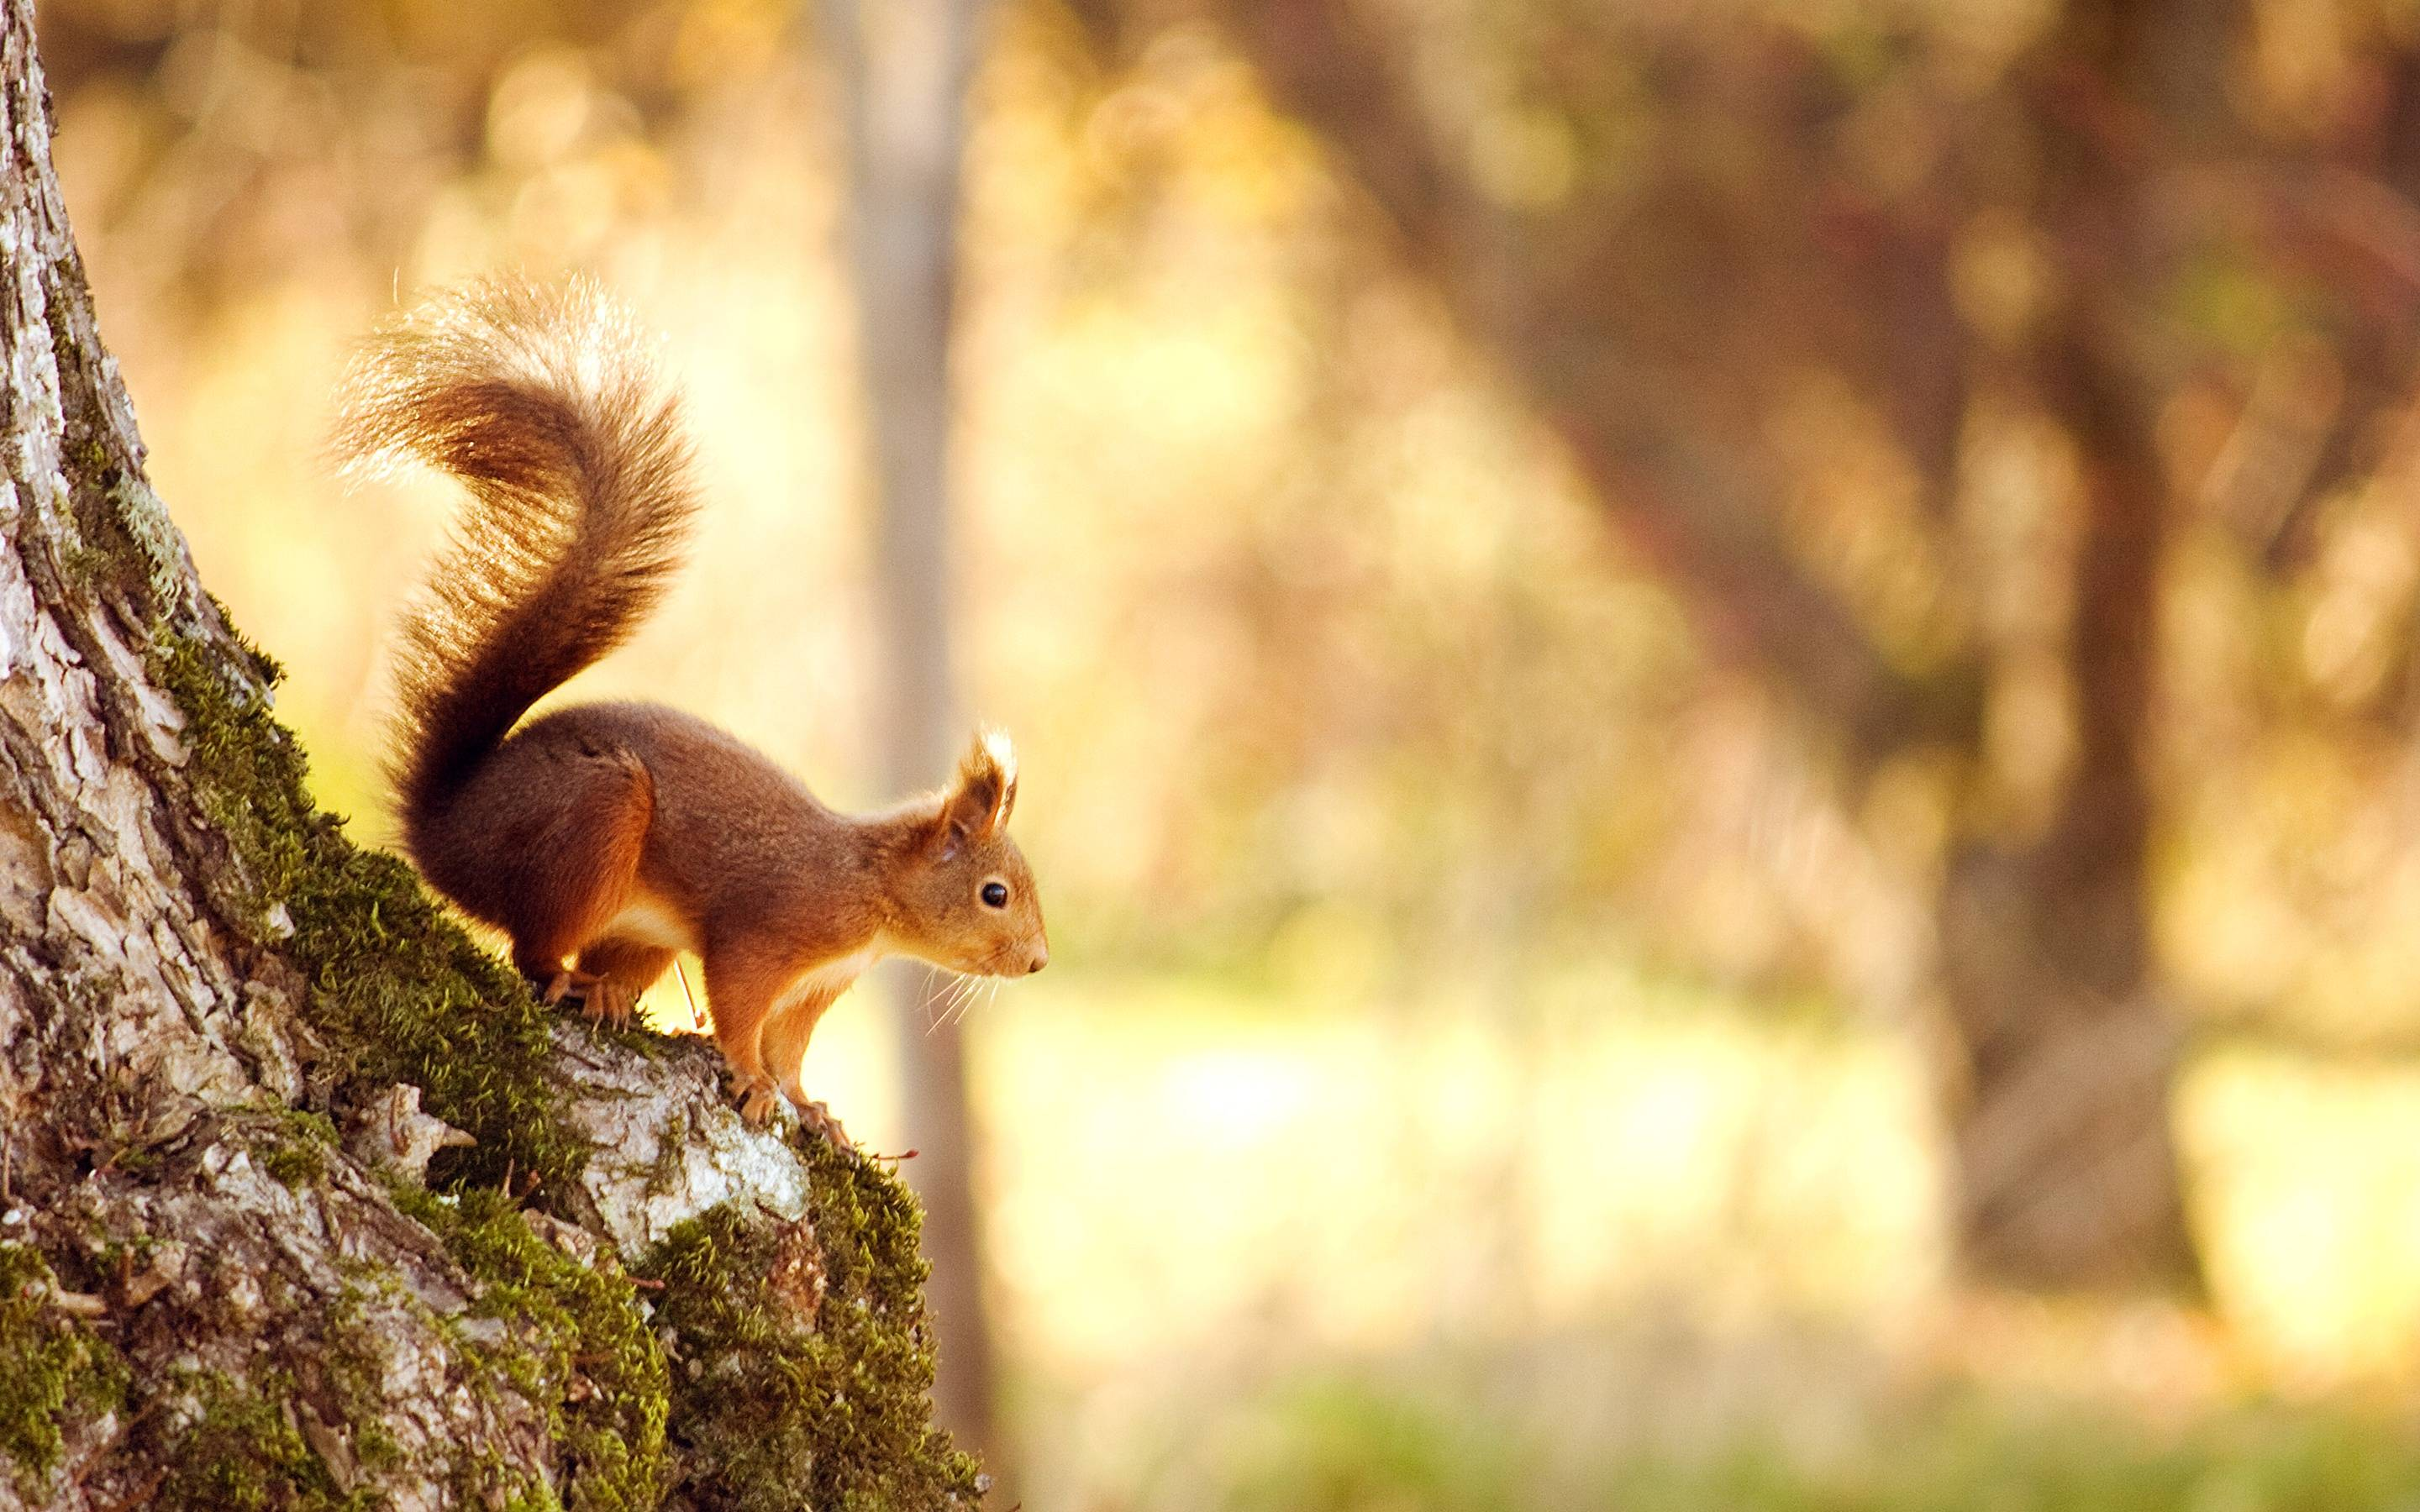 Squirrel Wallpaper 39776 in Animals - Telusers.